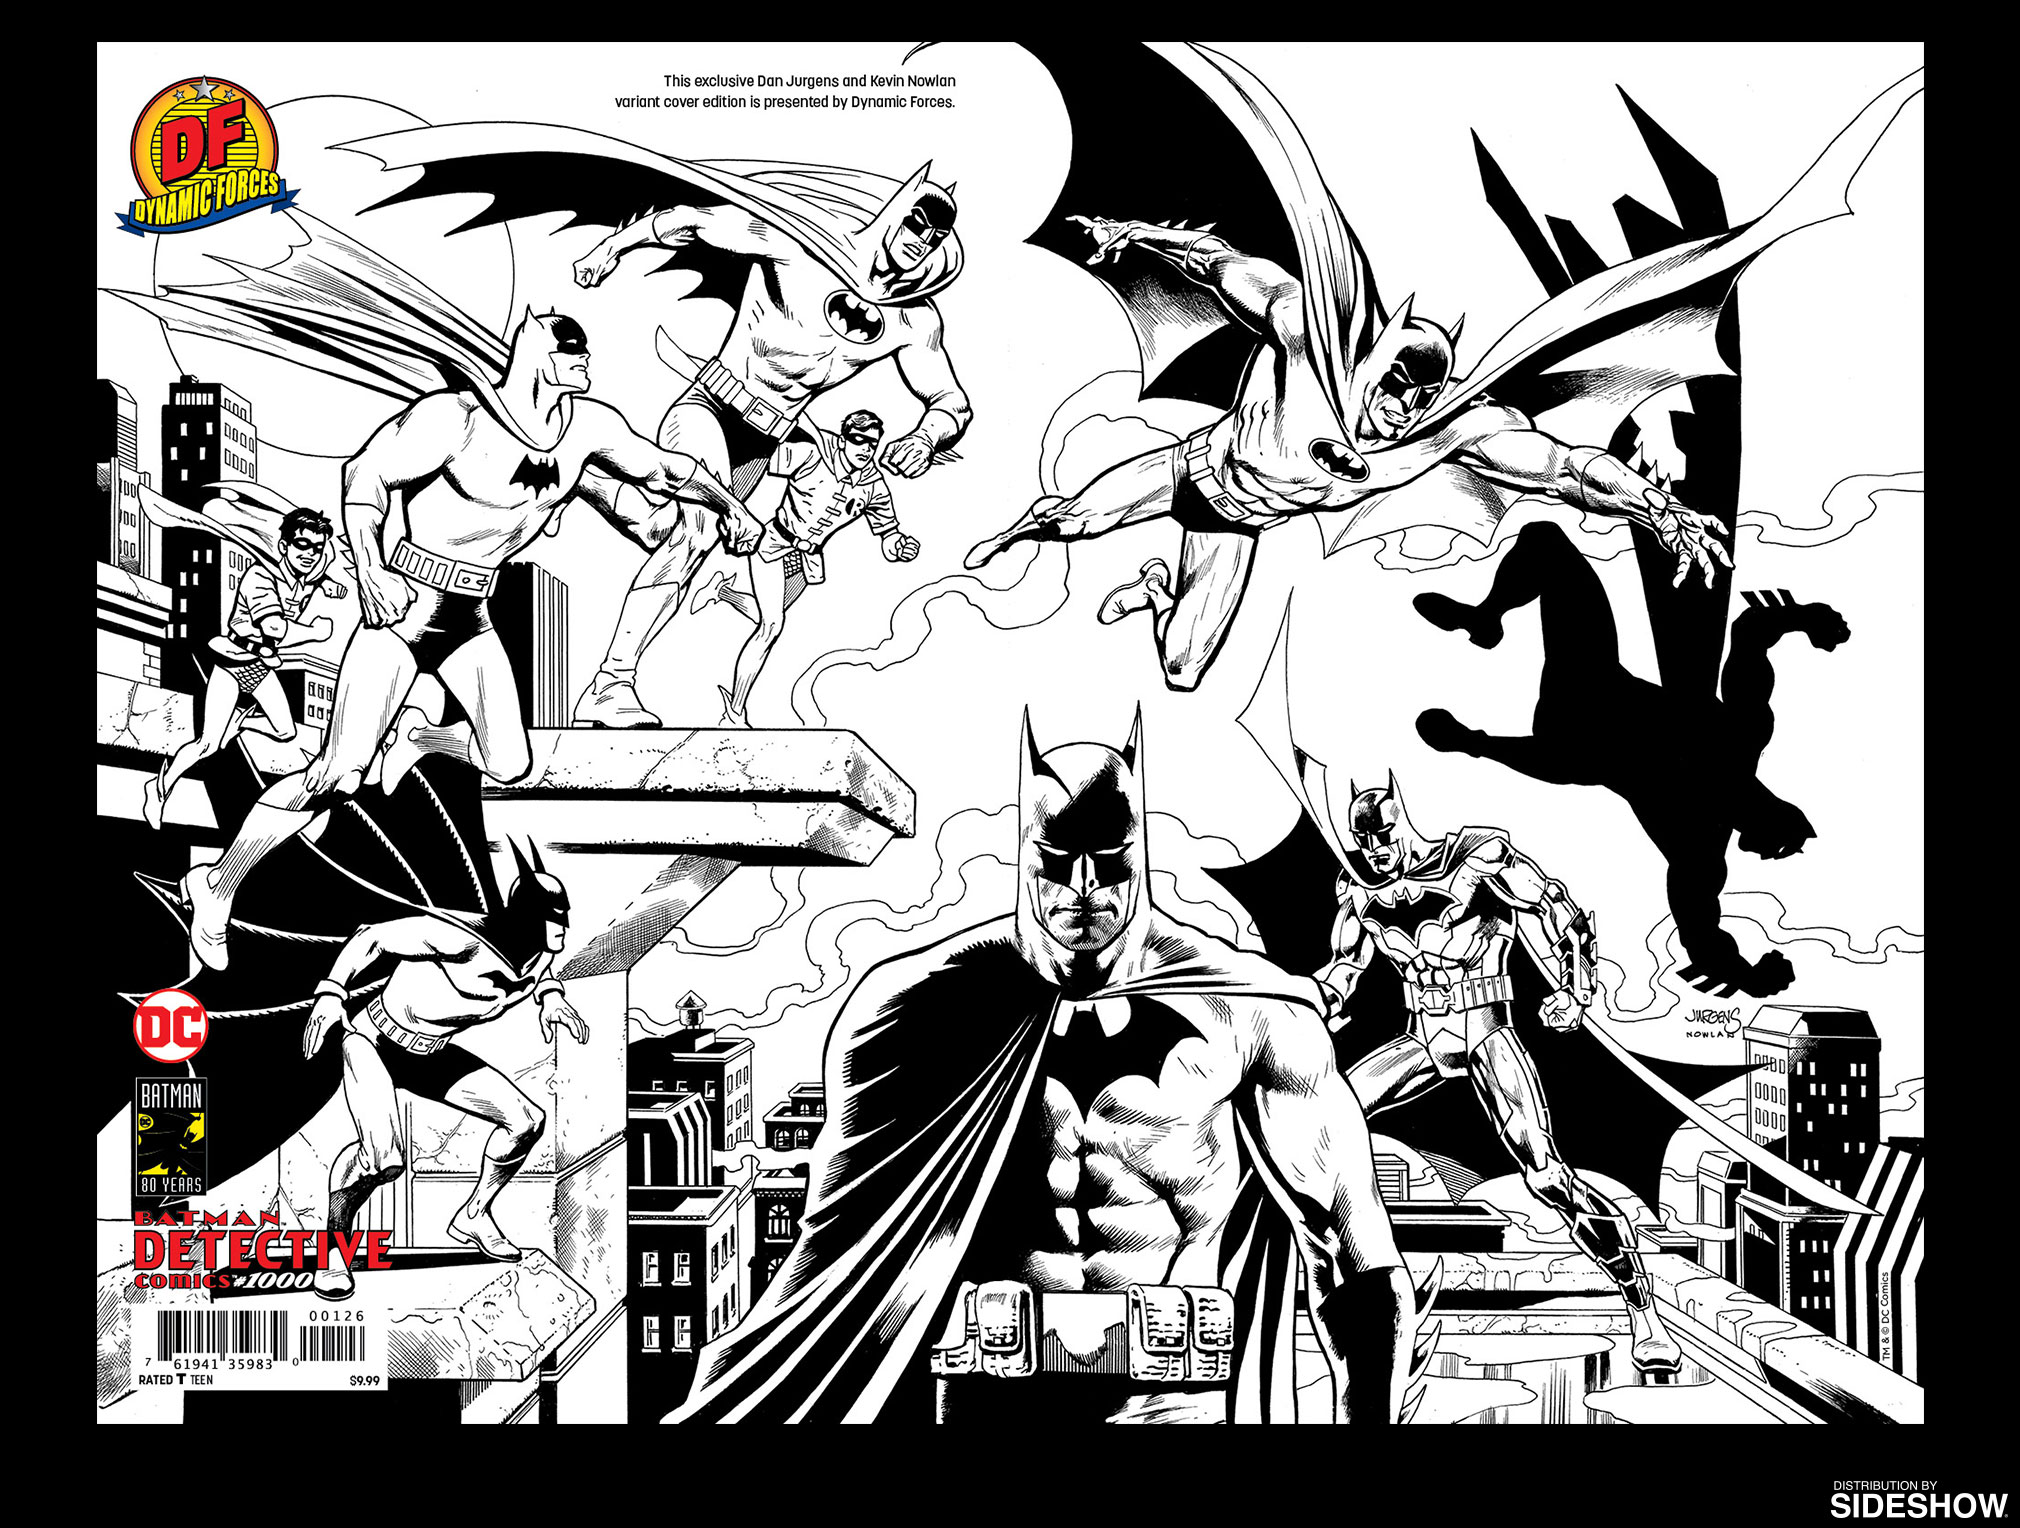 Detective comics 1000 pure line art edition prototype shown